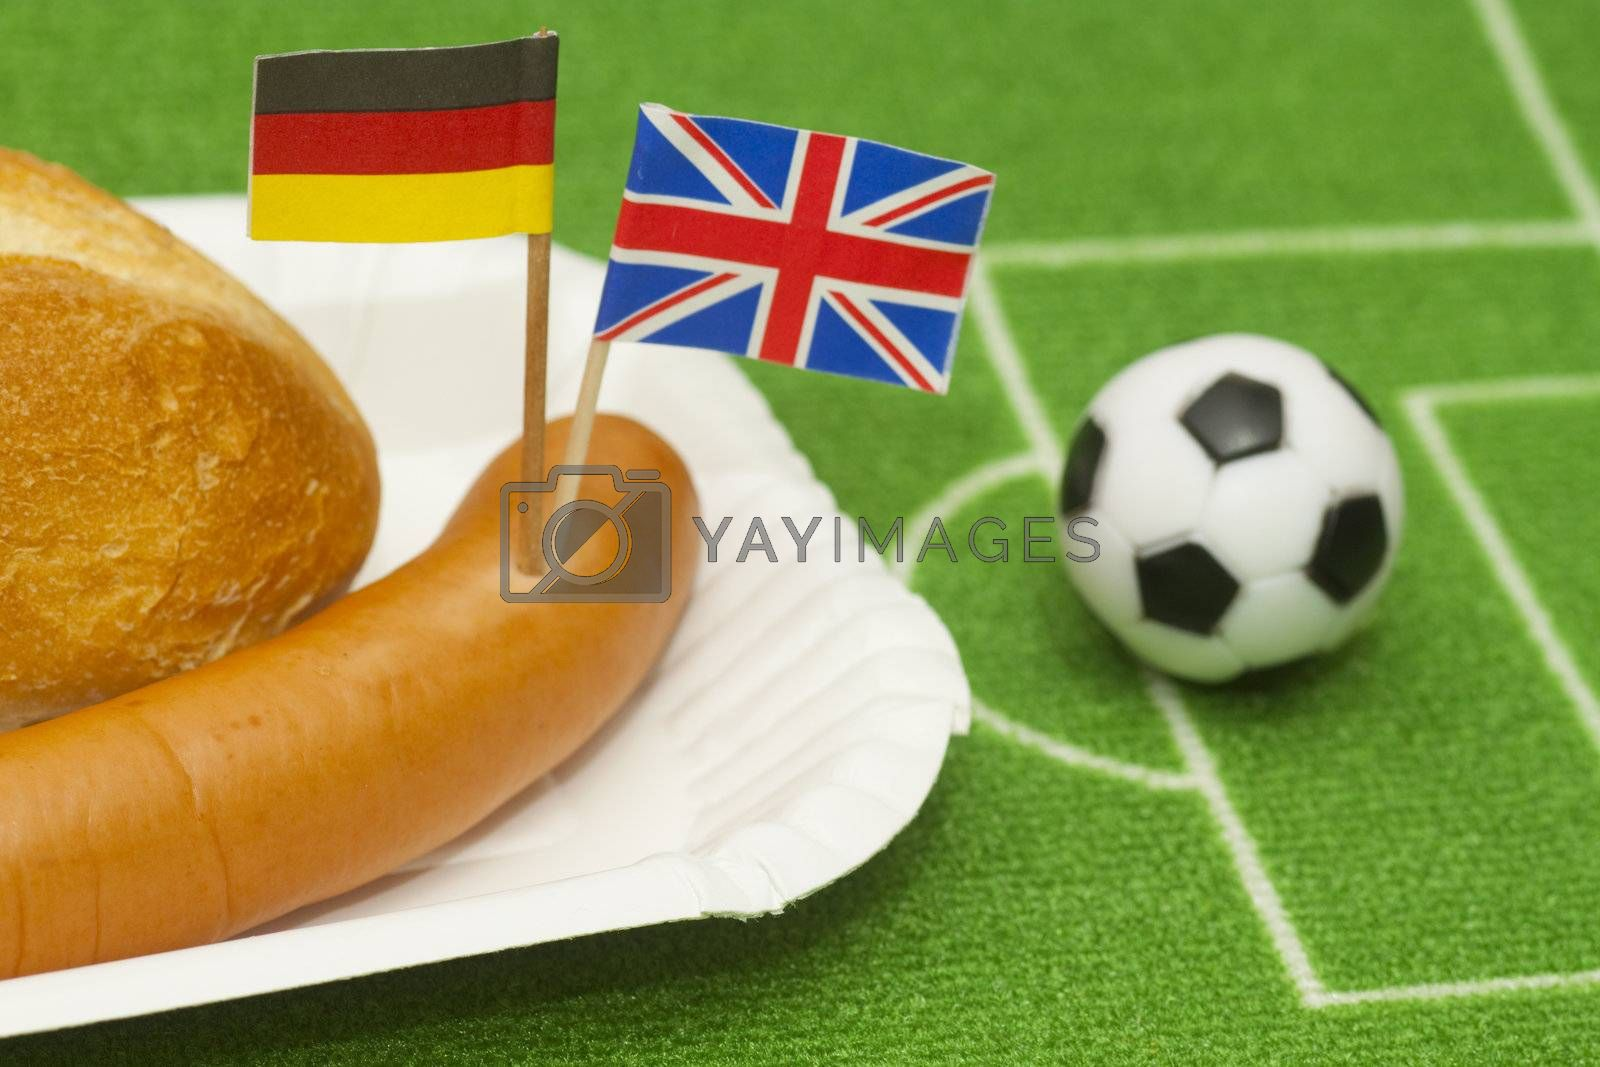 Sausage with roll on a football field background with soccer ball